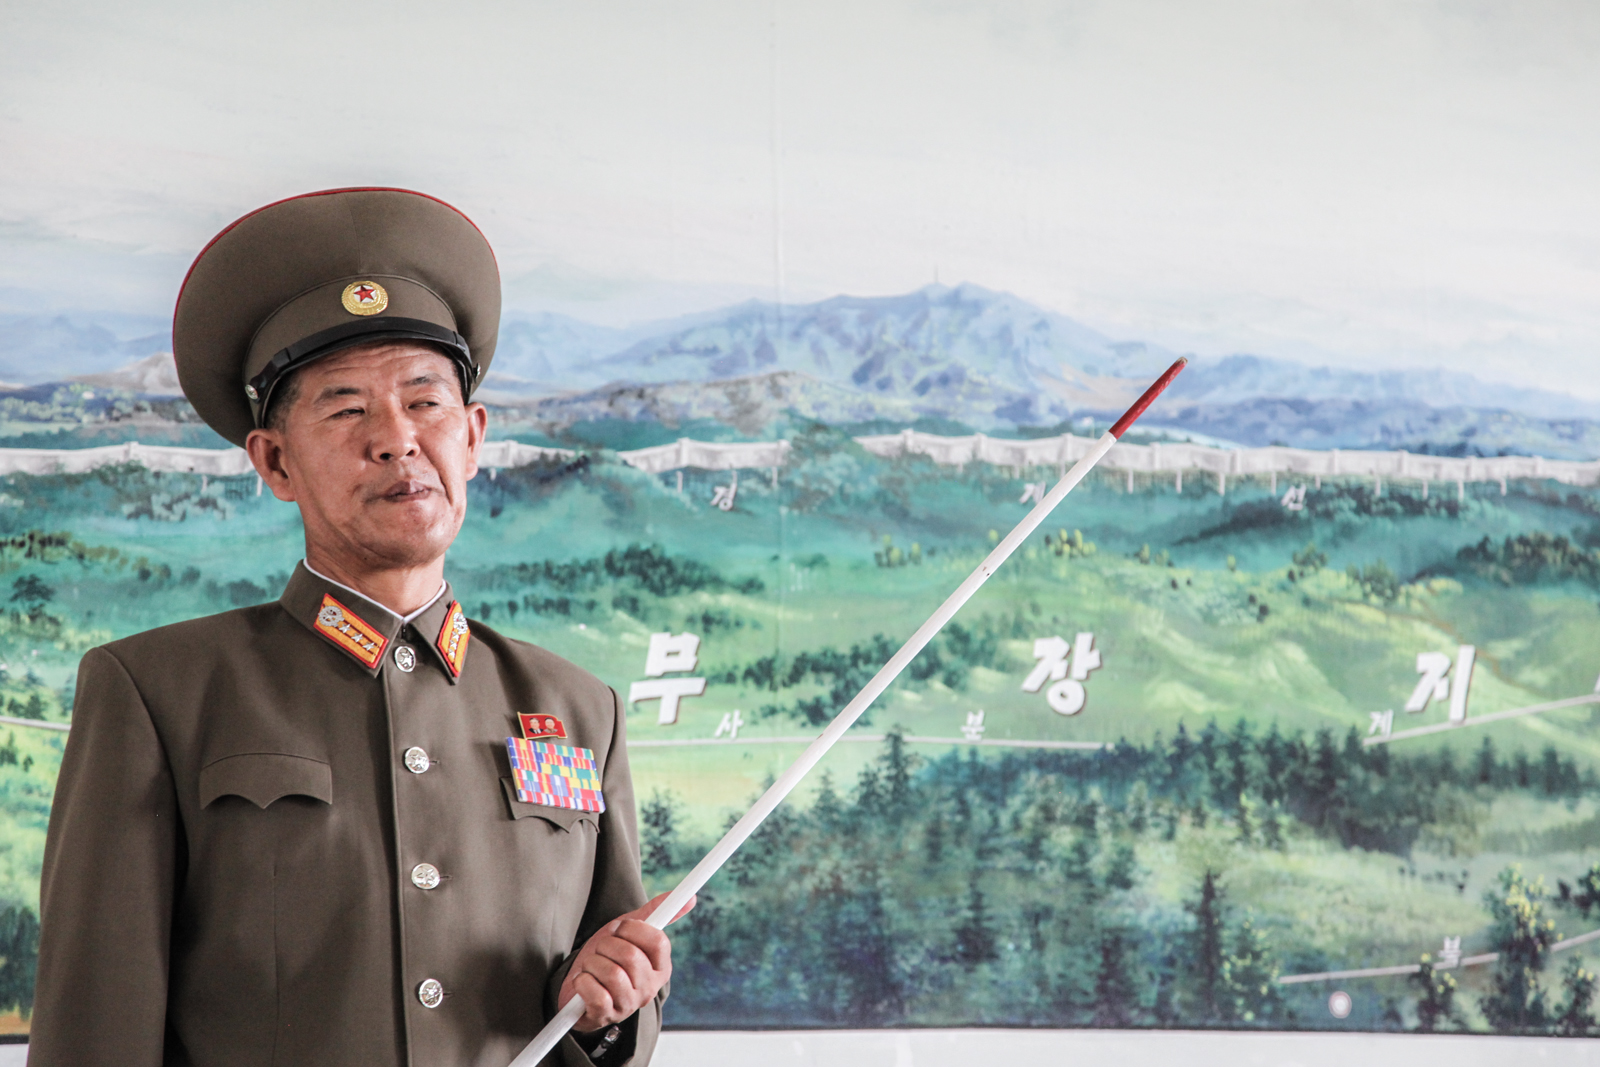 A DPRK officer illustrating a map of the DMZ in Kaesong.